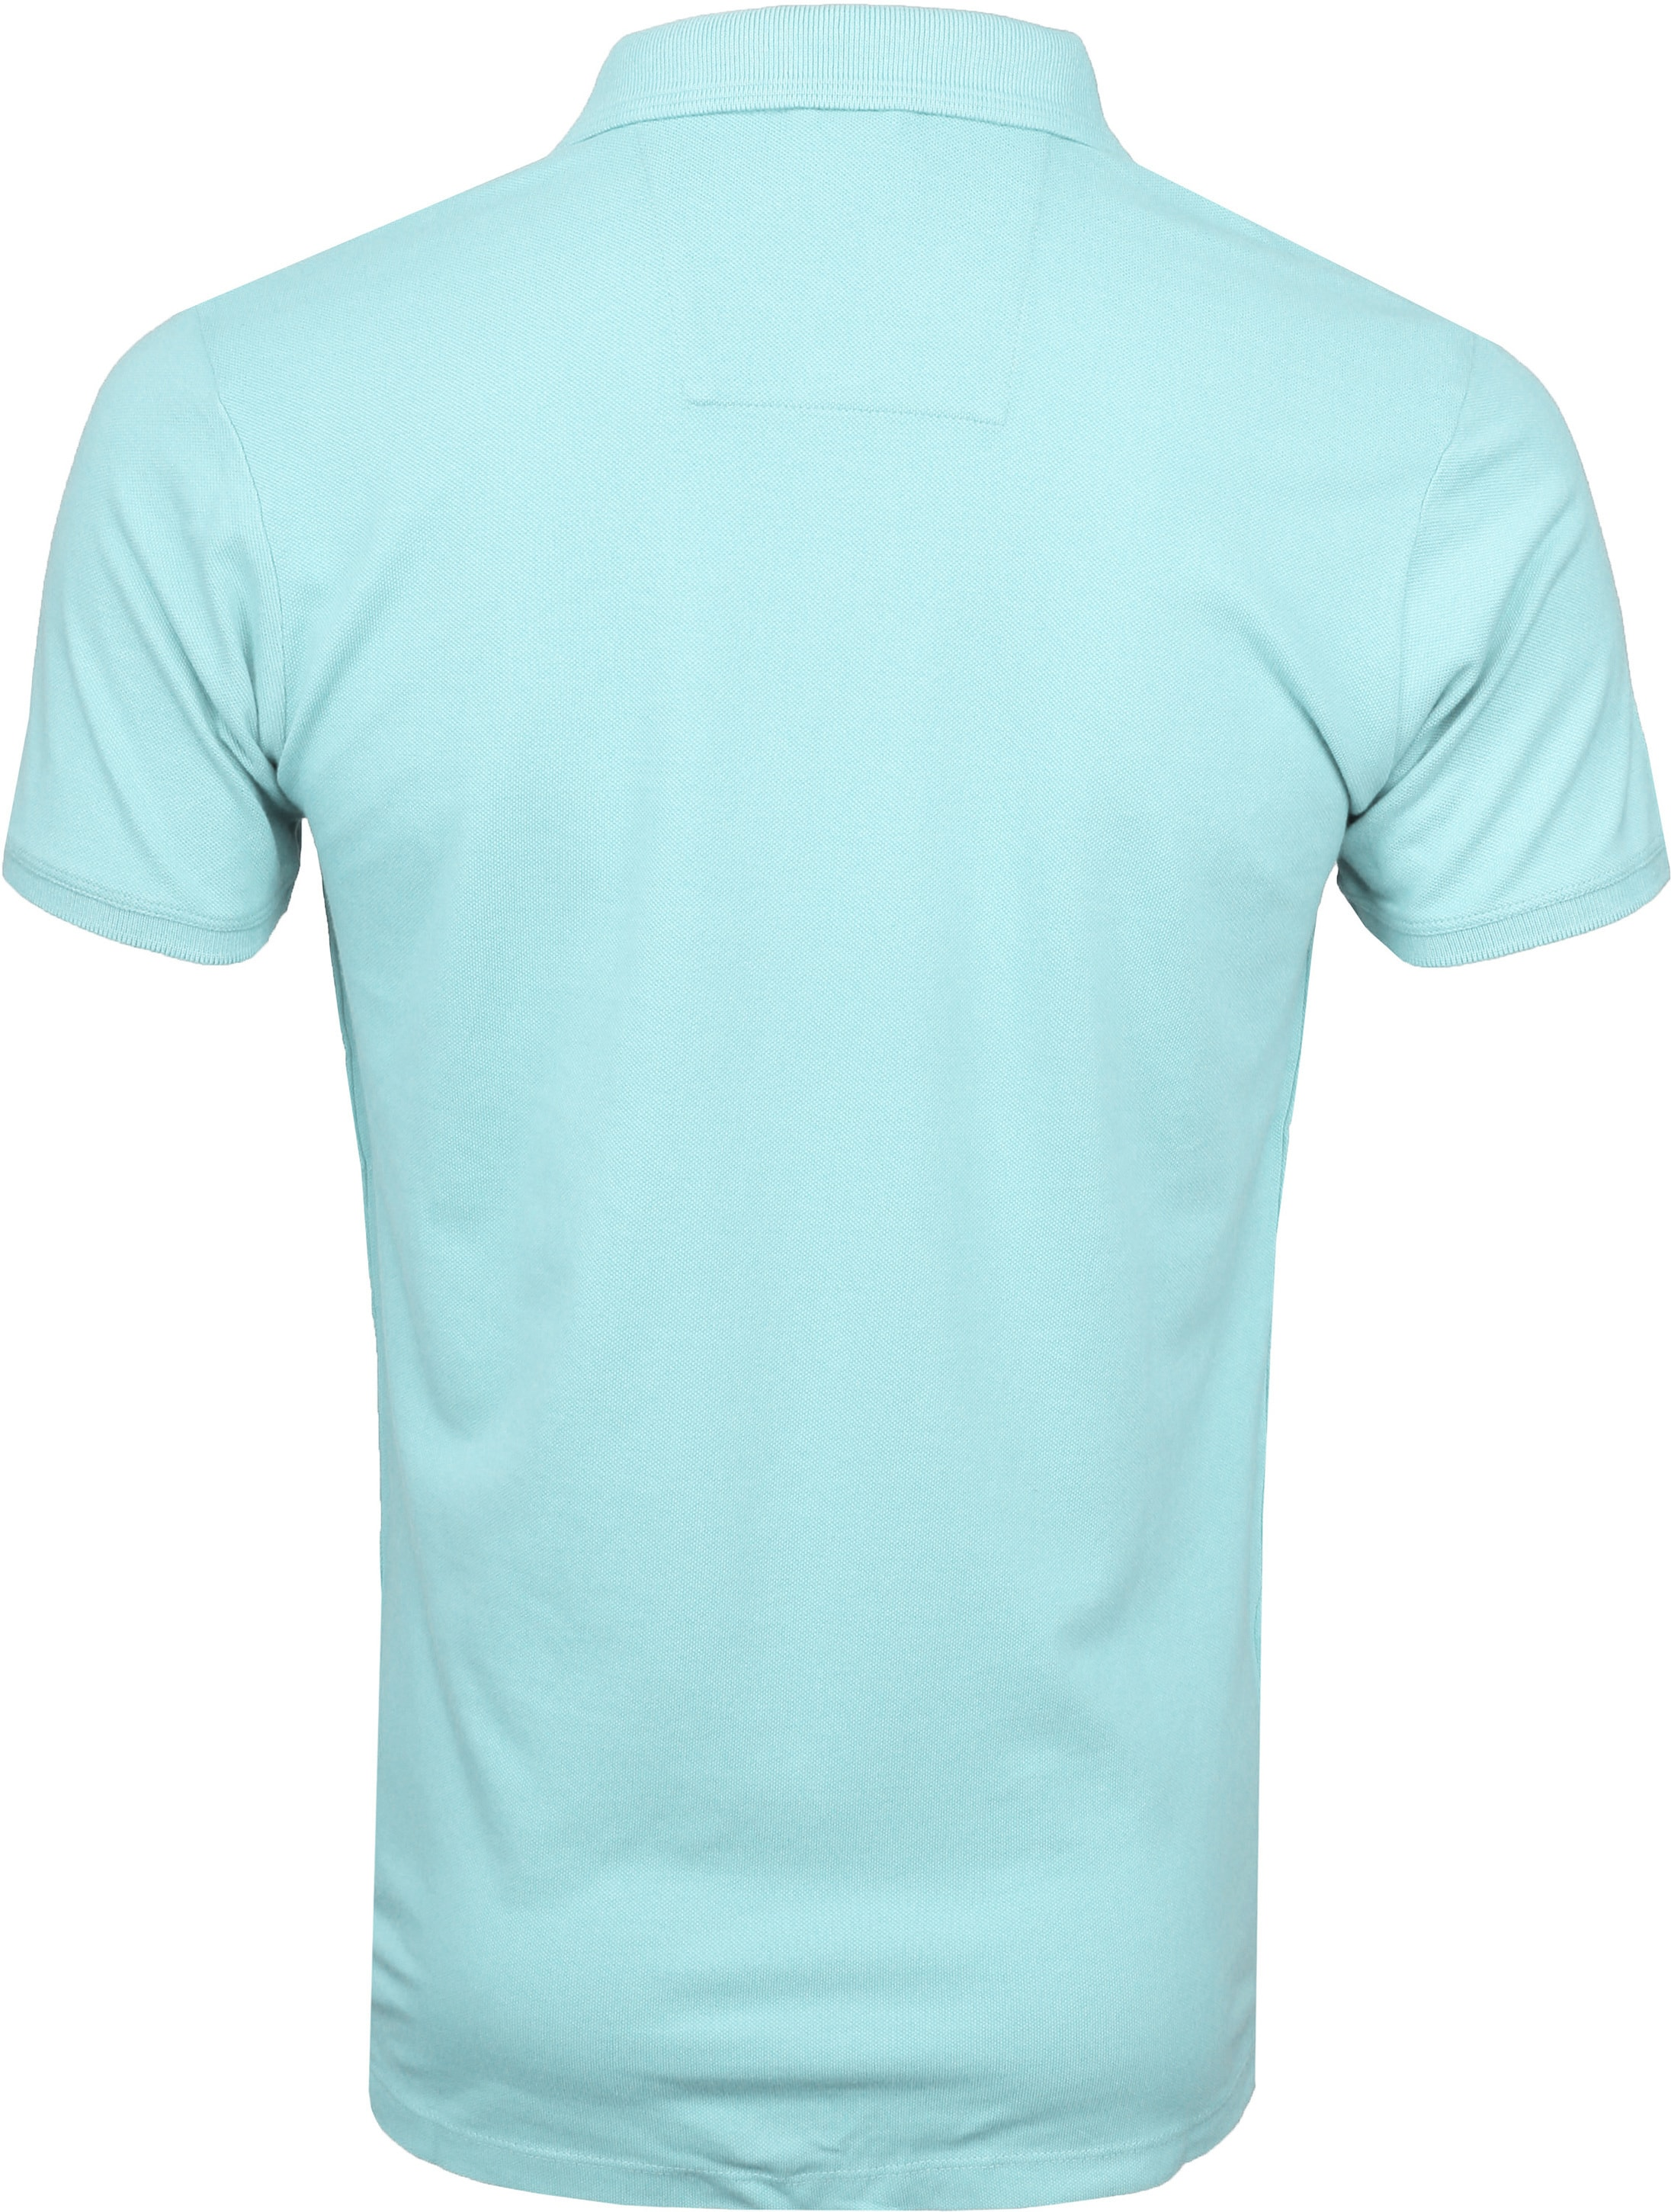 Dstrezzed Bowie Poloshirt Turquoise foto 3